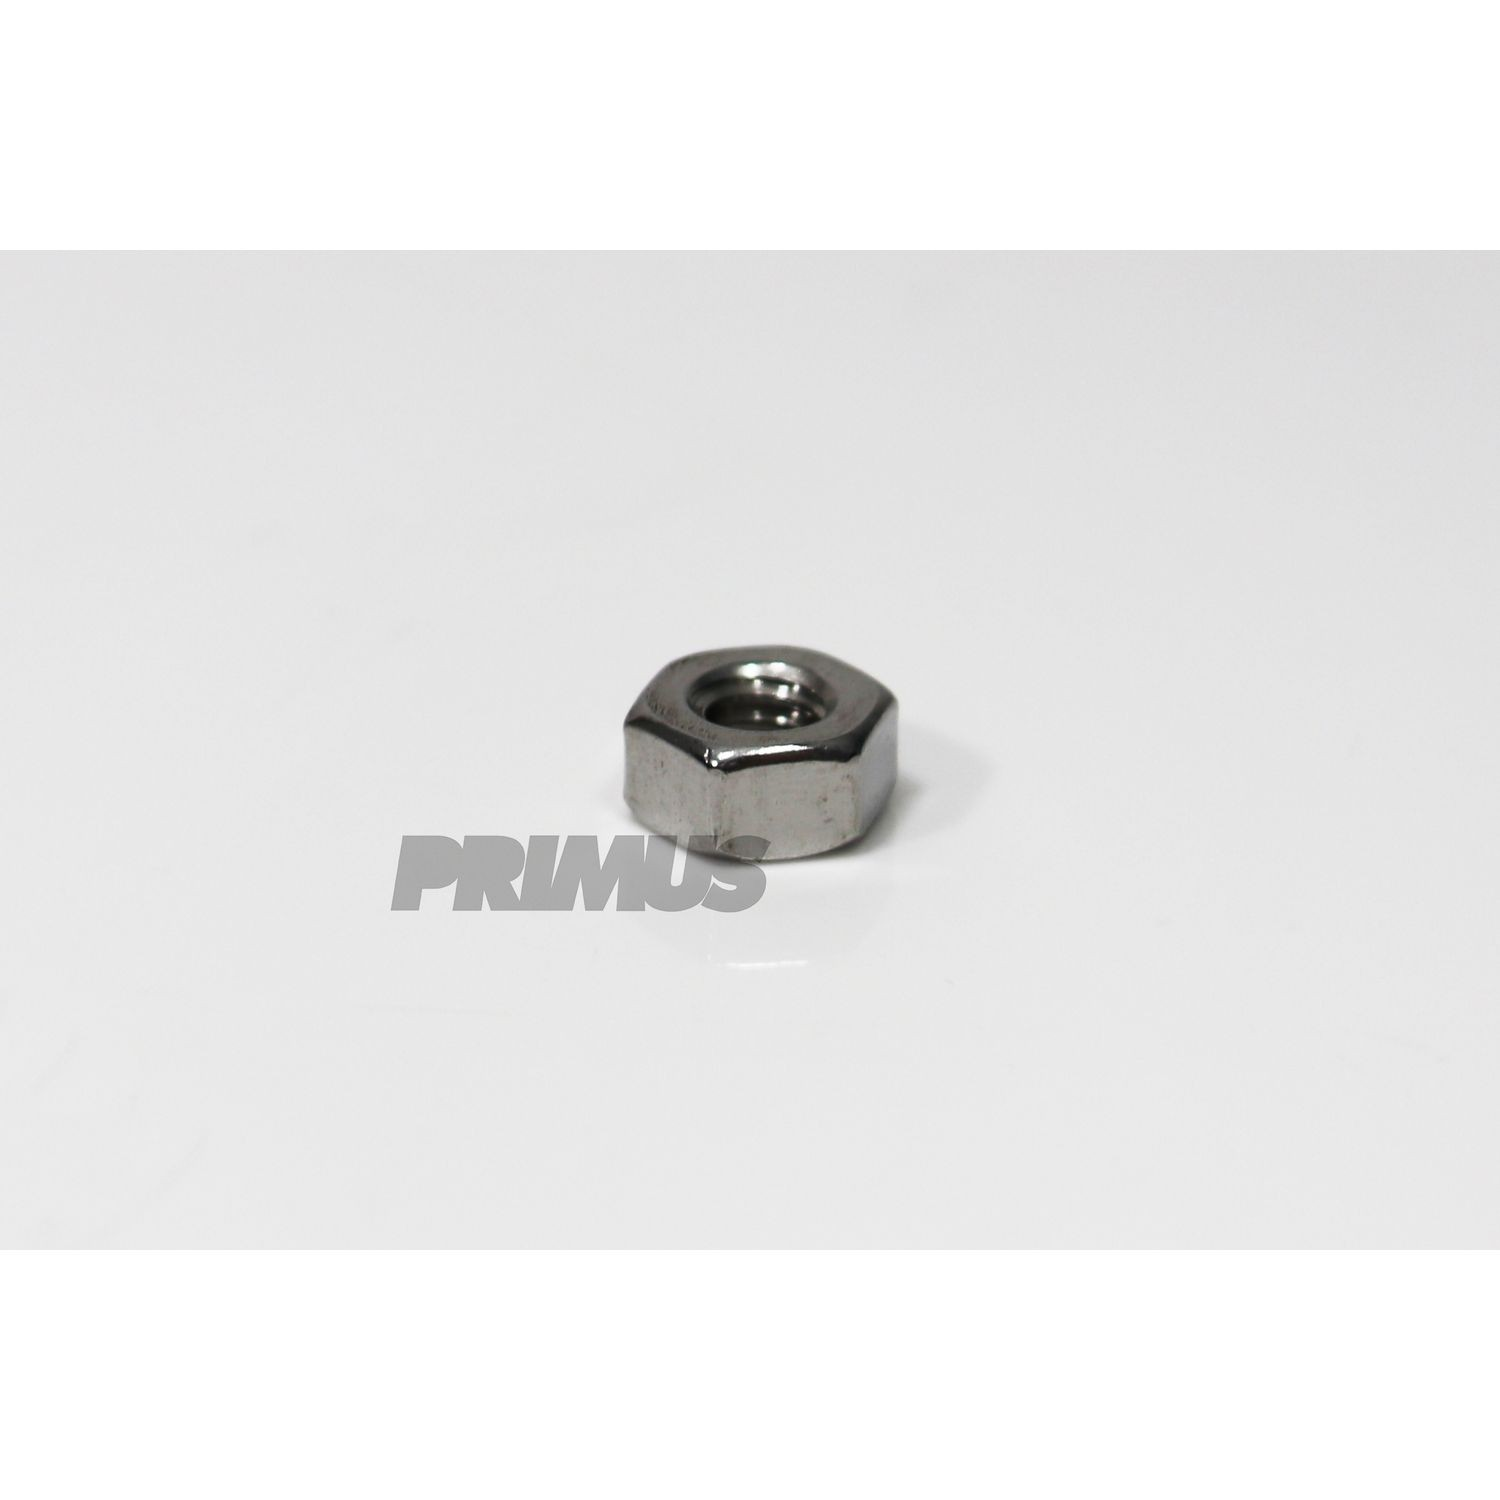 "1/4"" STAINLESS STEEL HEX NUTS"